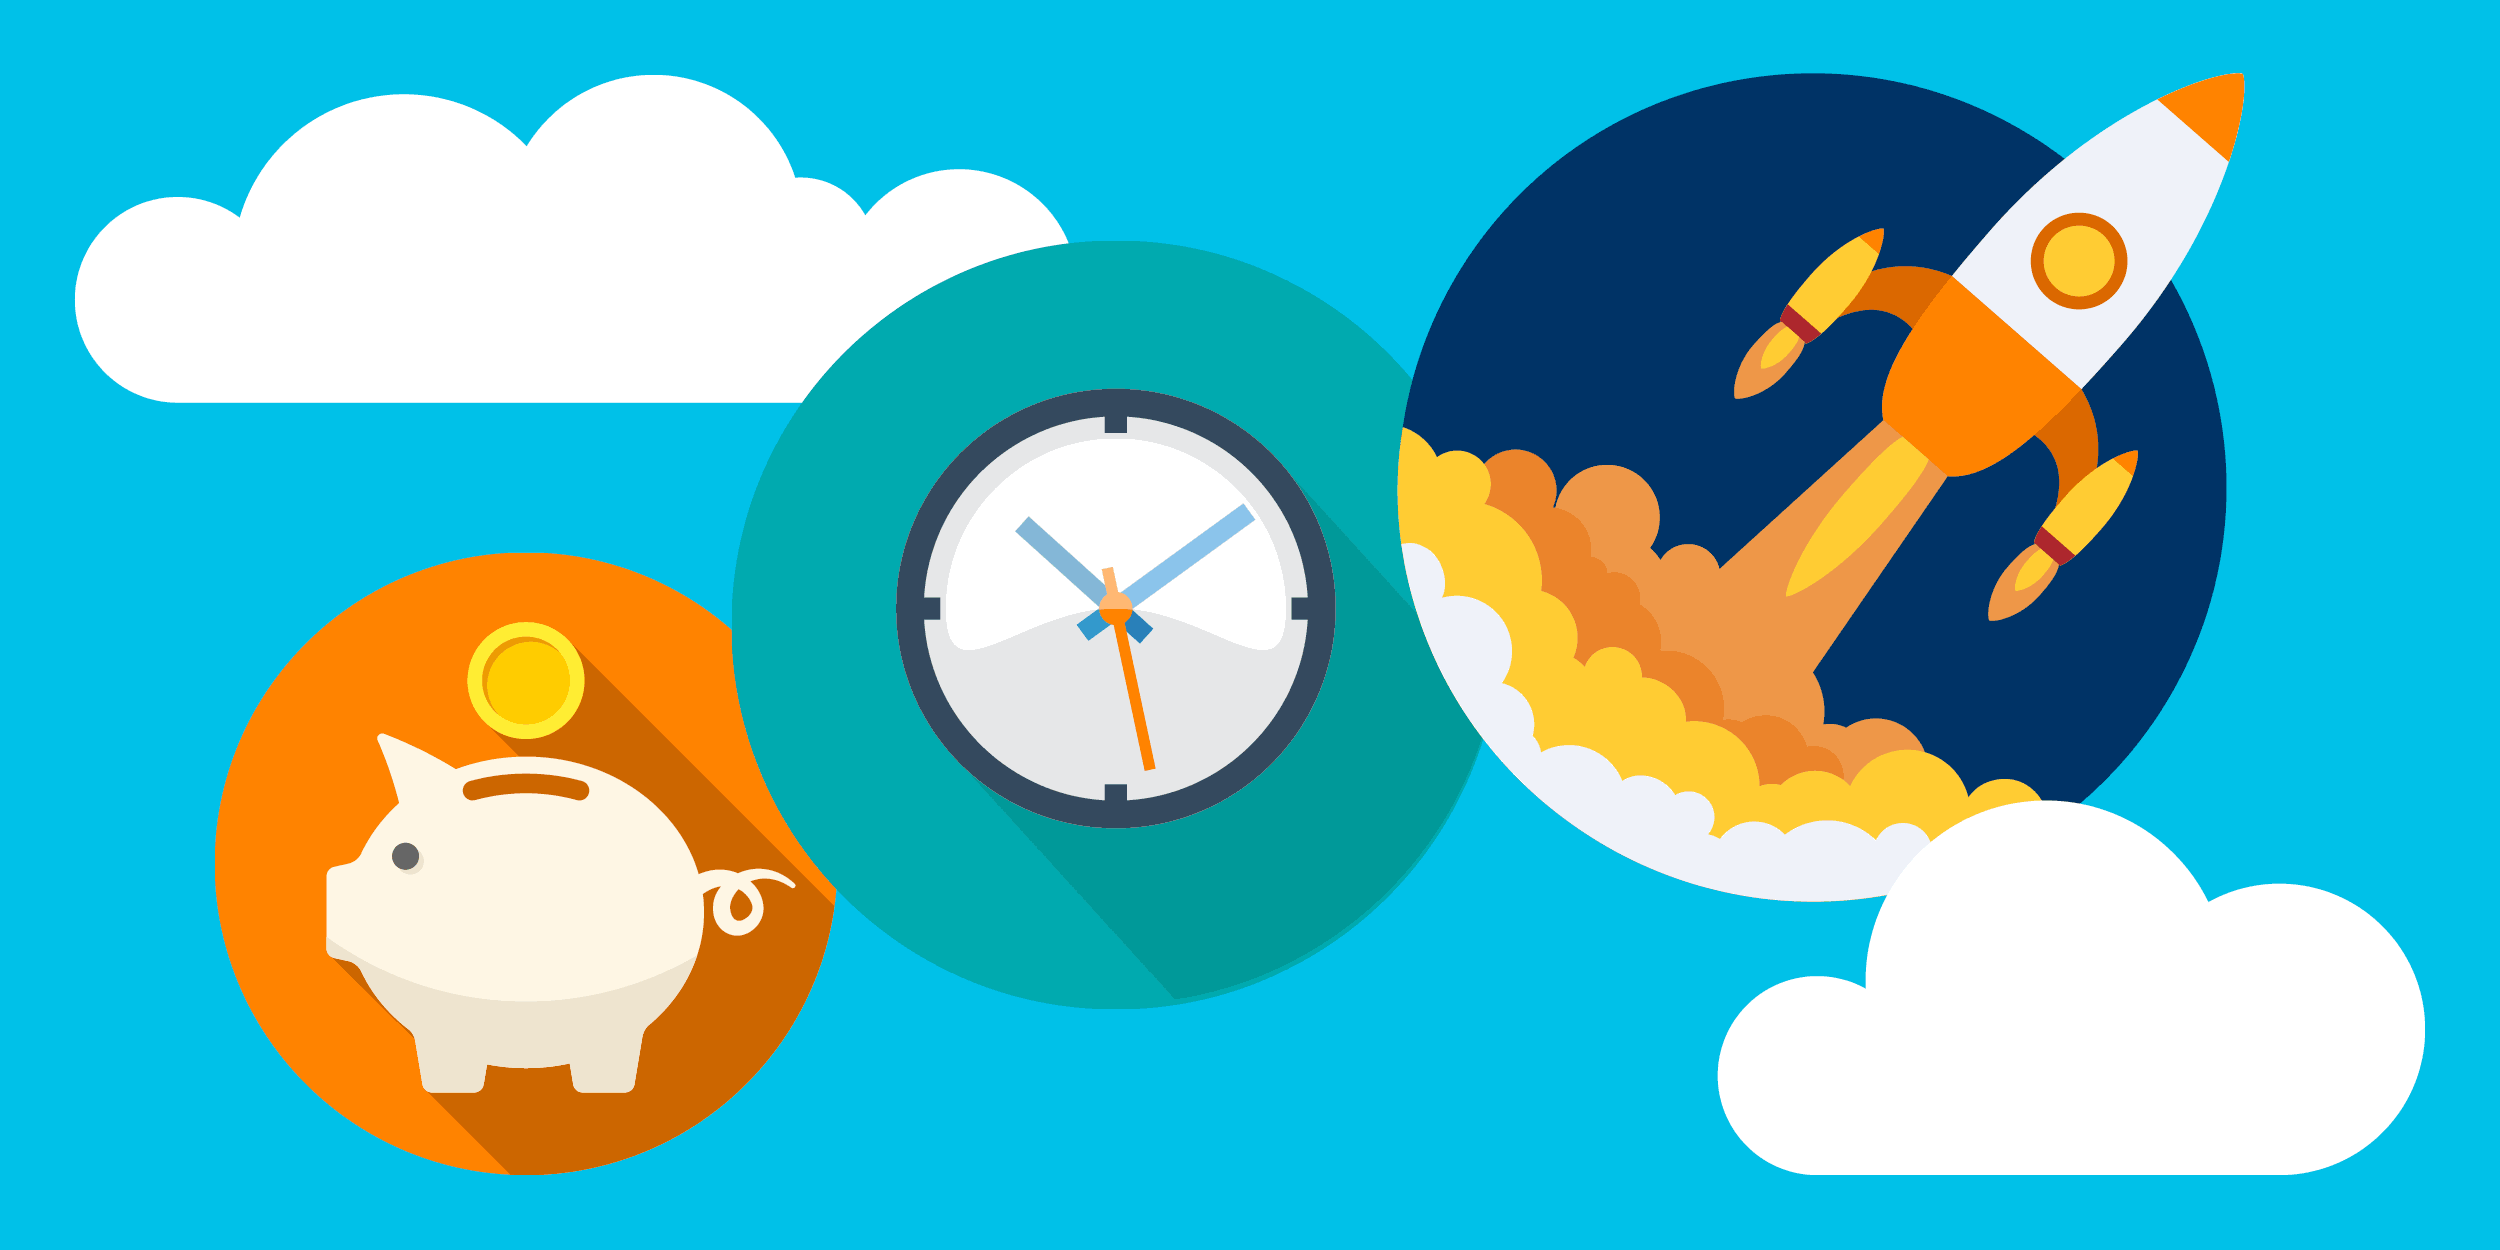 illustration of a piggy bank, a clock, and a rocket ship blasting off,  symbolizing how nonprofits can save time and money using cloud products together